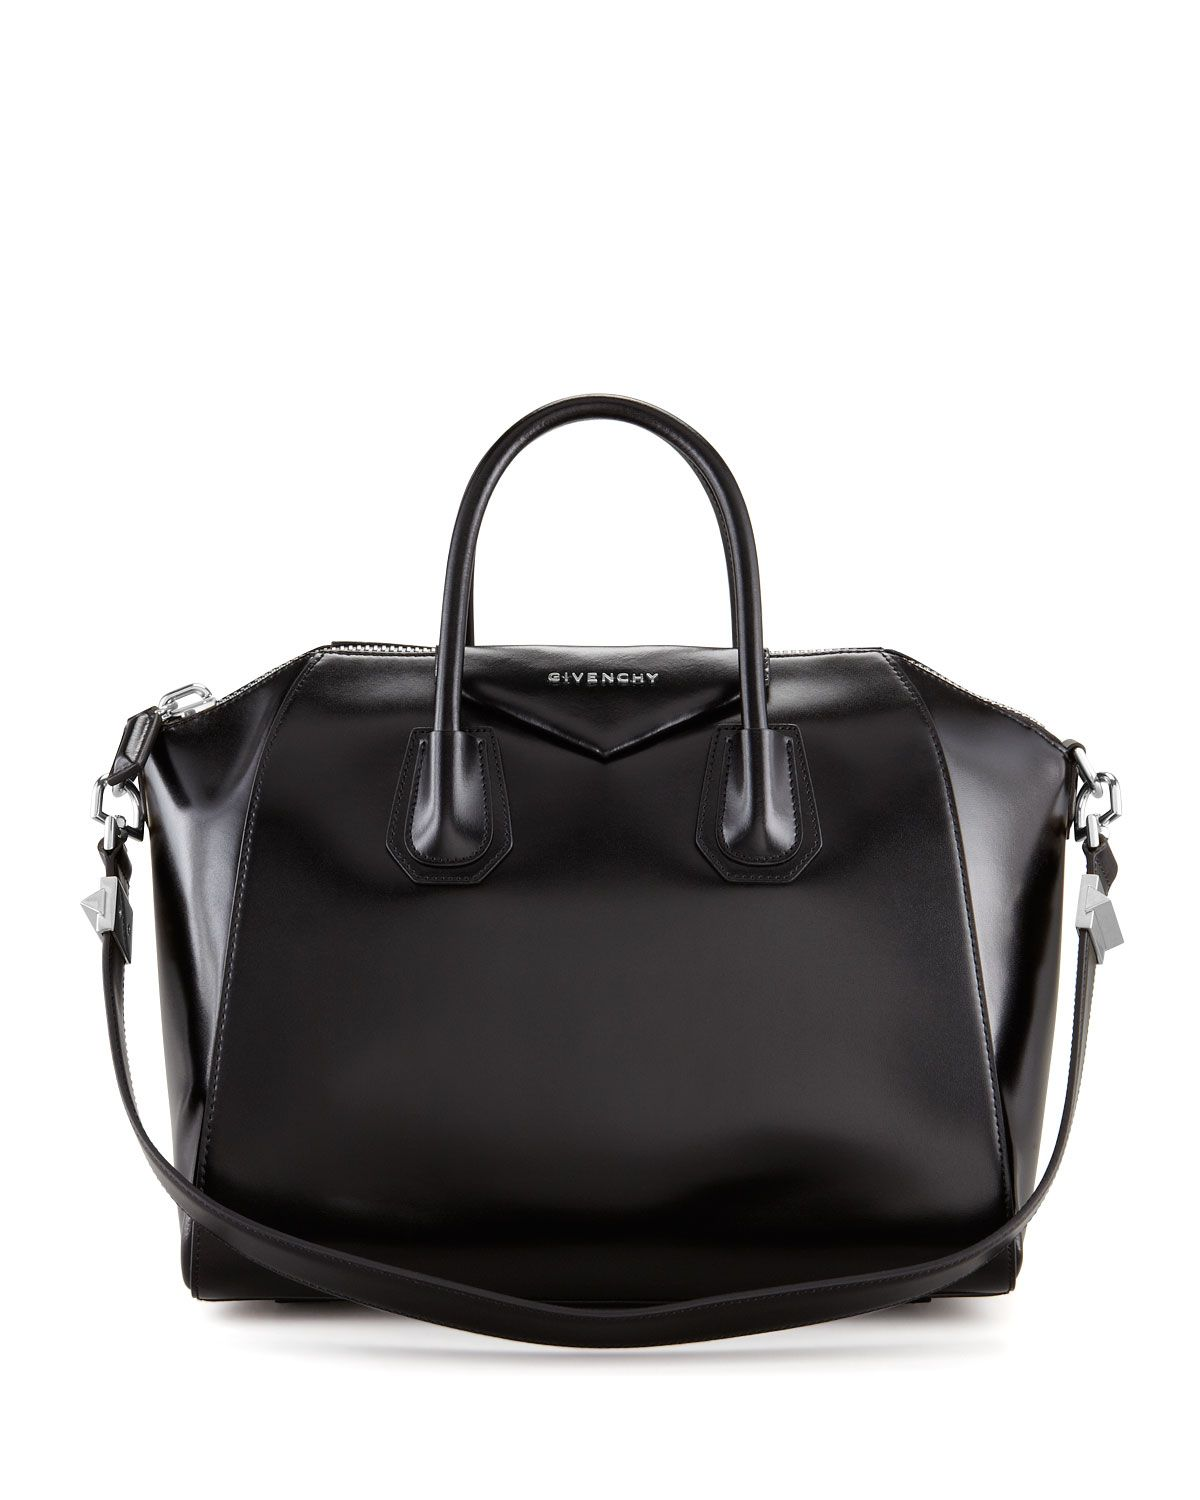 Givenchy Bag Love This Shape And The Black But Not Price